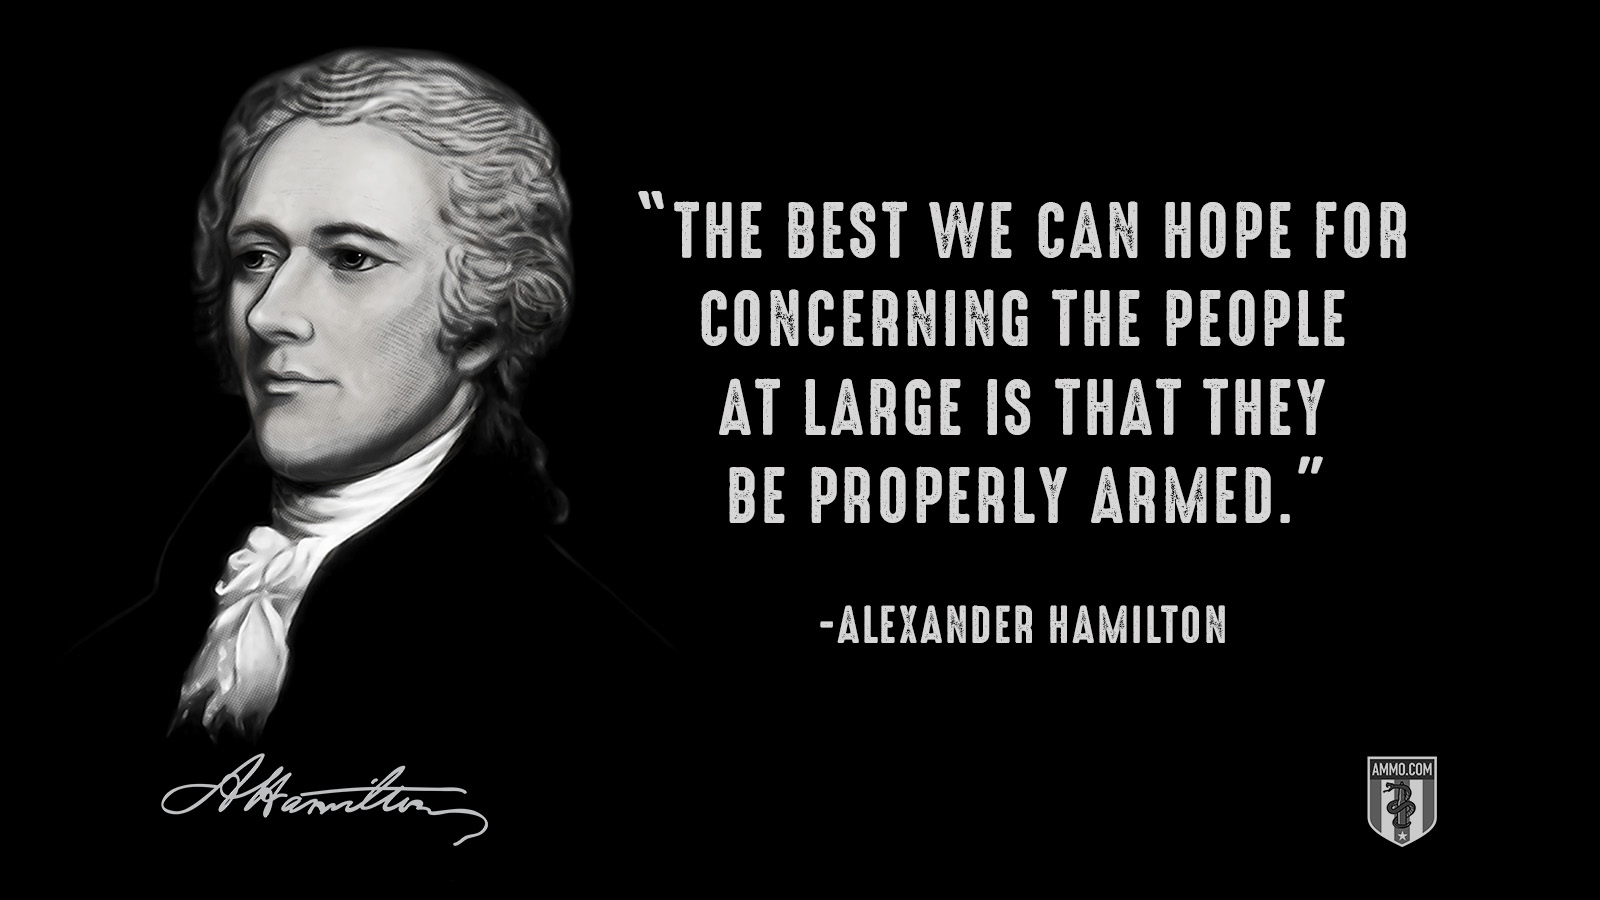 """The best we can hope for concerning the people at large is that they be properly armed."" - Alexander Hamilton"